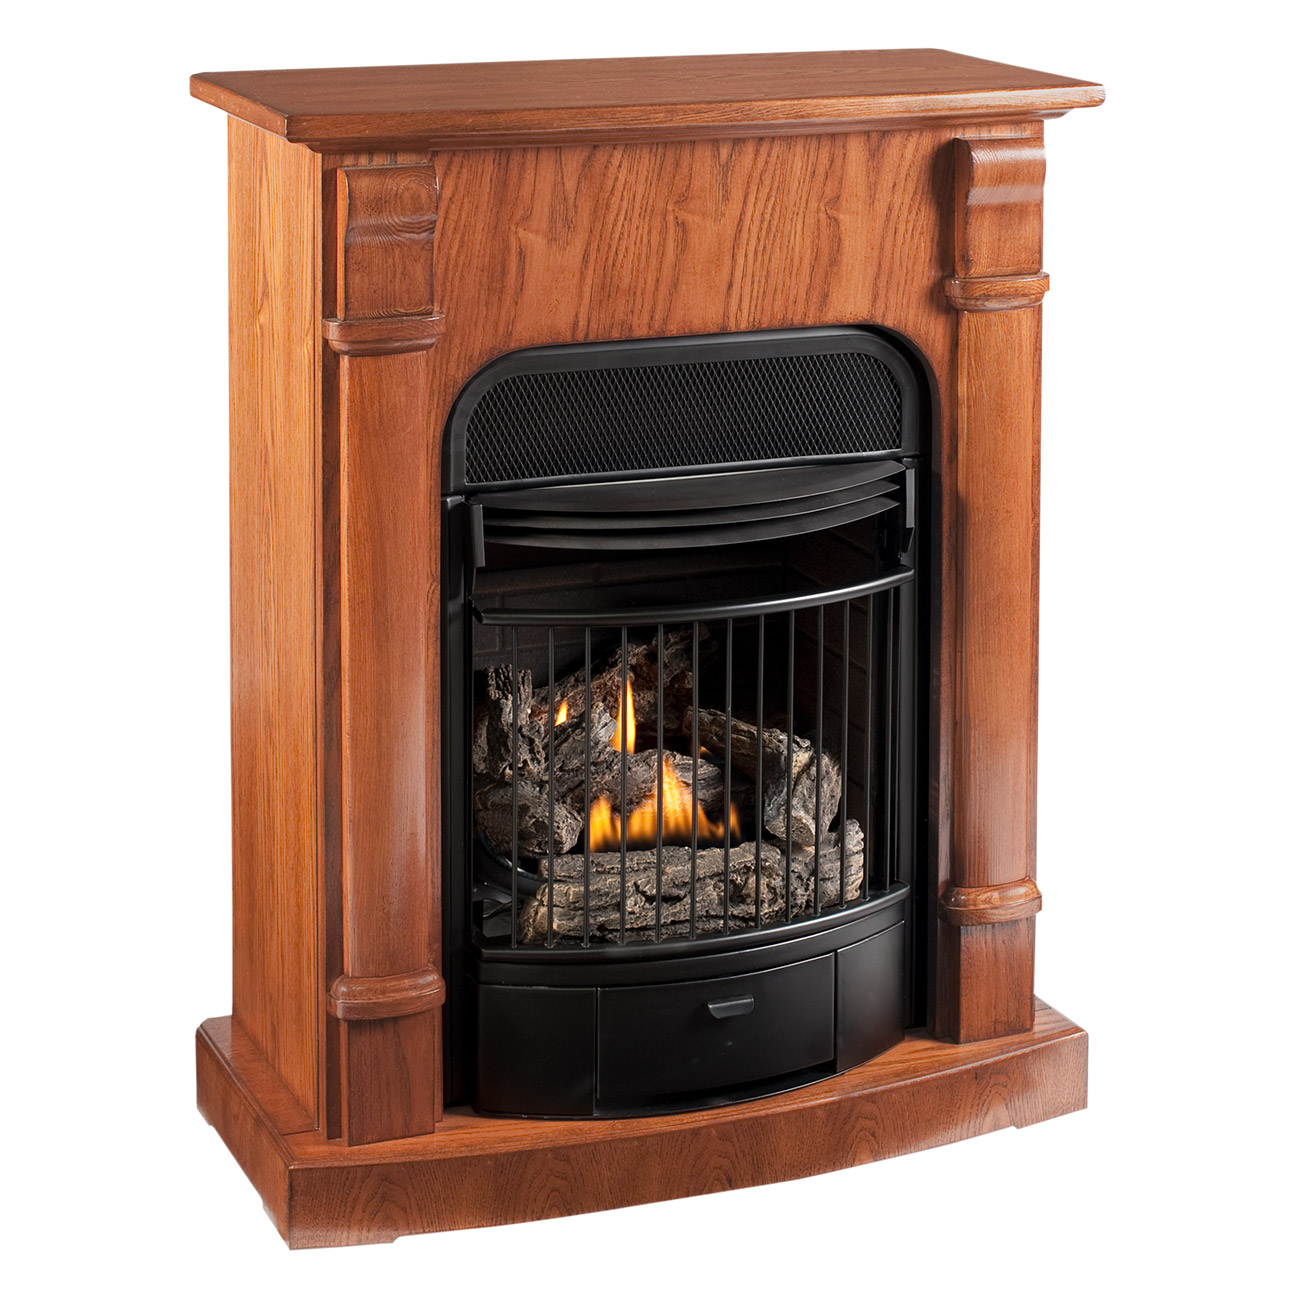 Ventless Fireplace: Ventless Fireplace Model# EDP200T2-MO